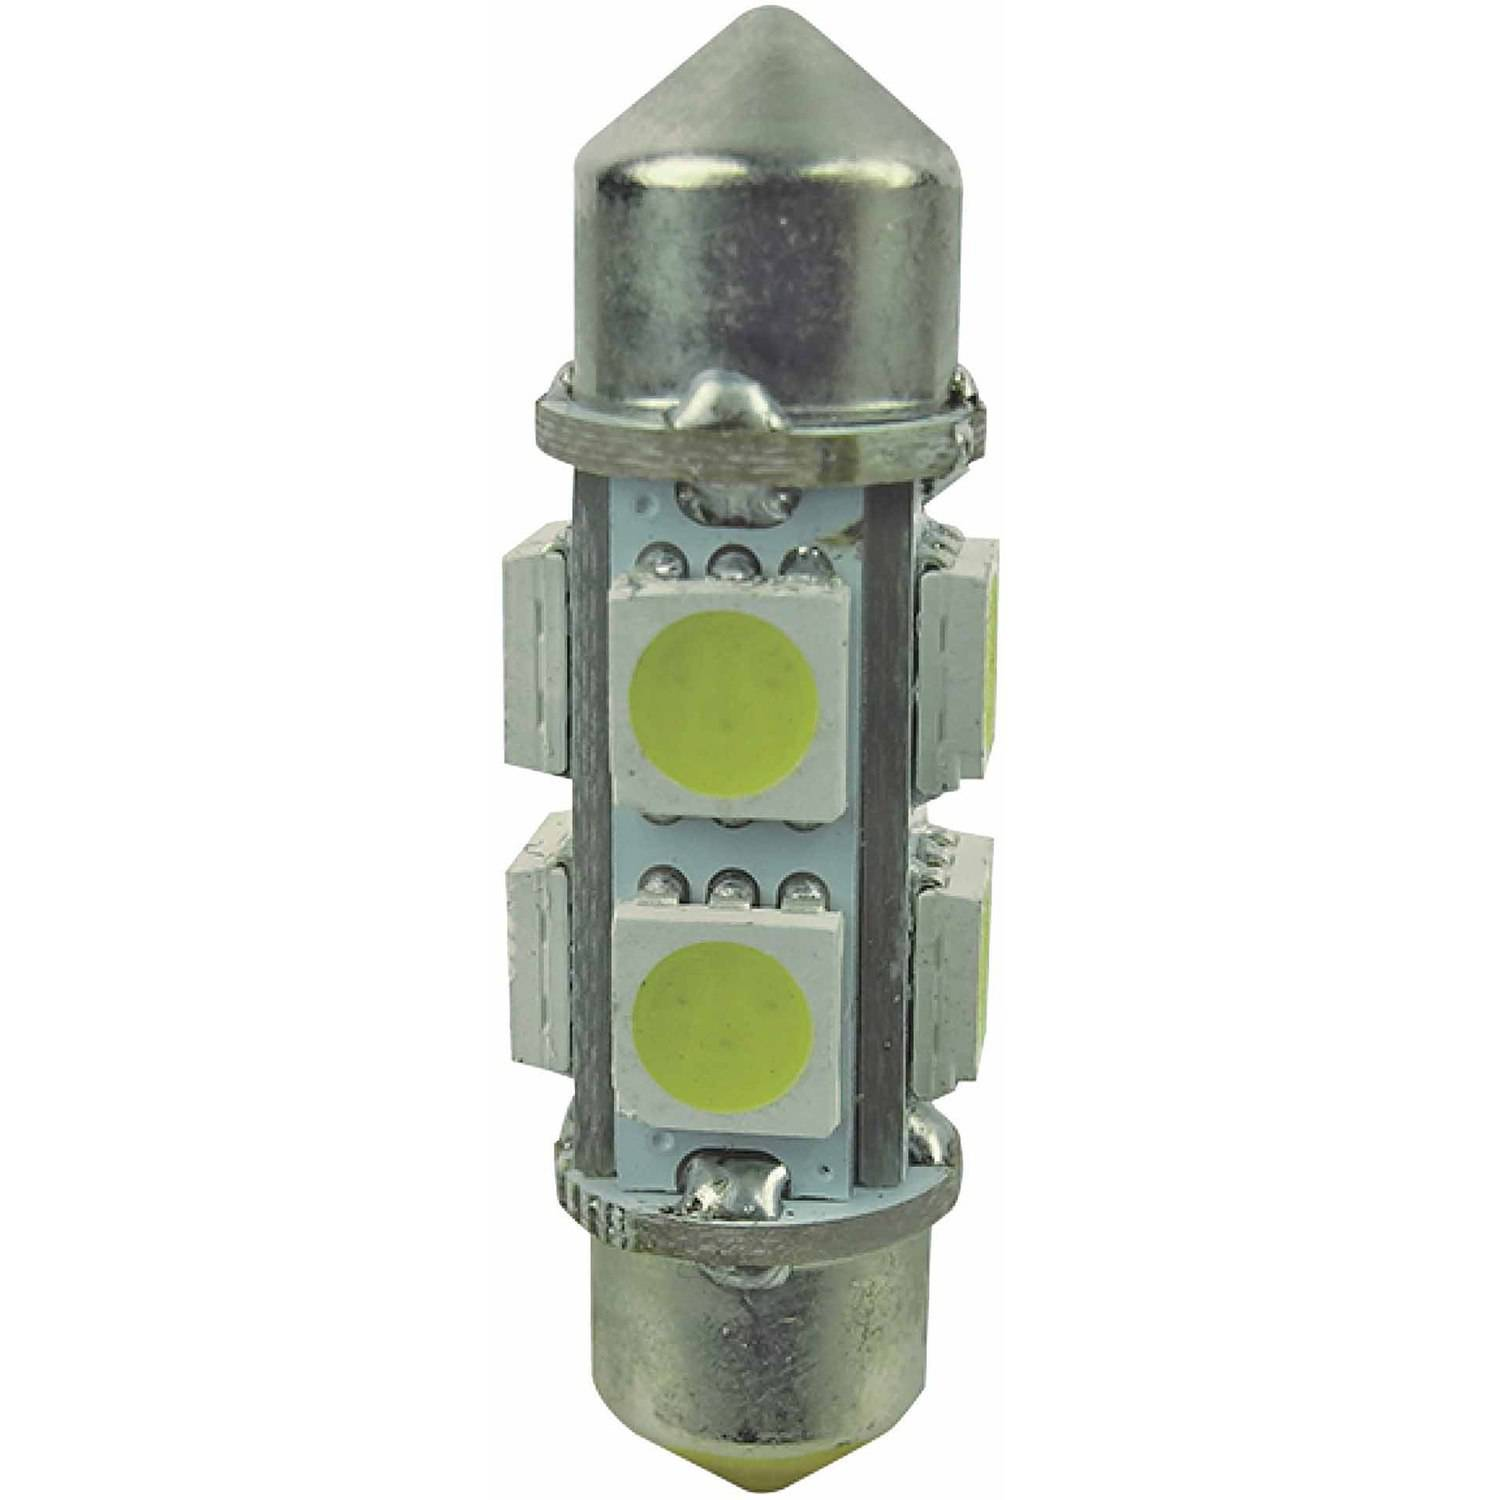 Seachoice LED Replacement Bulb LED 4 SMD by Seachoice Products